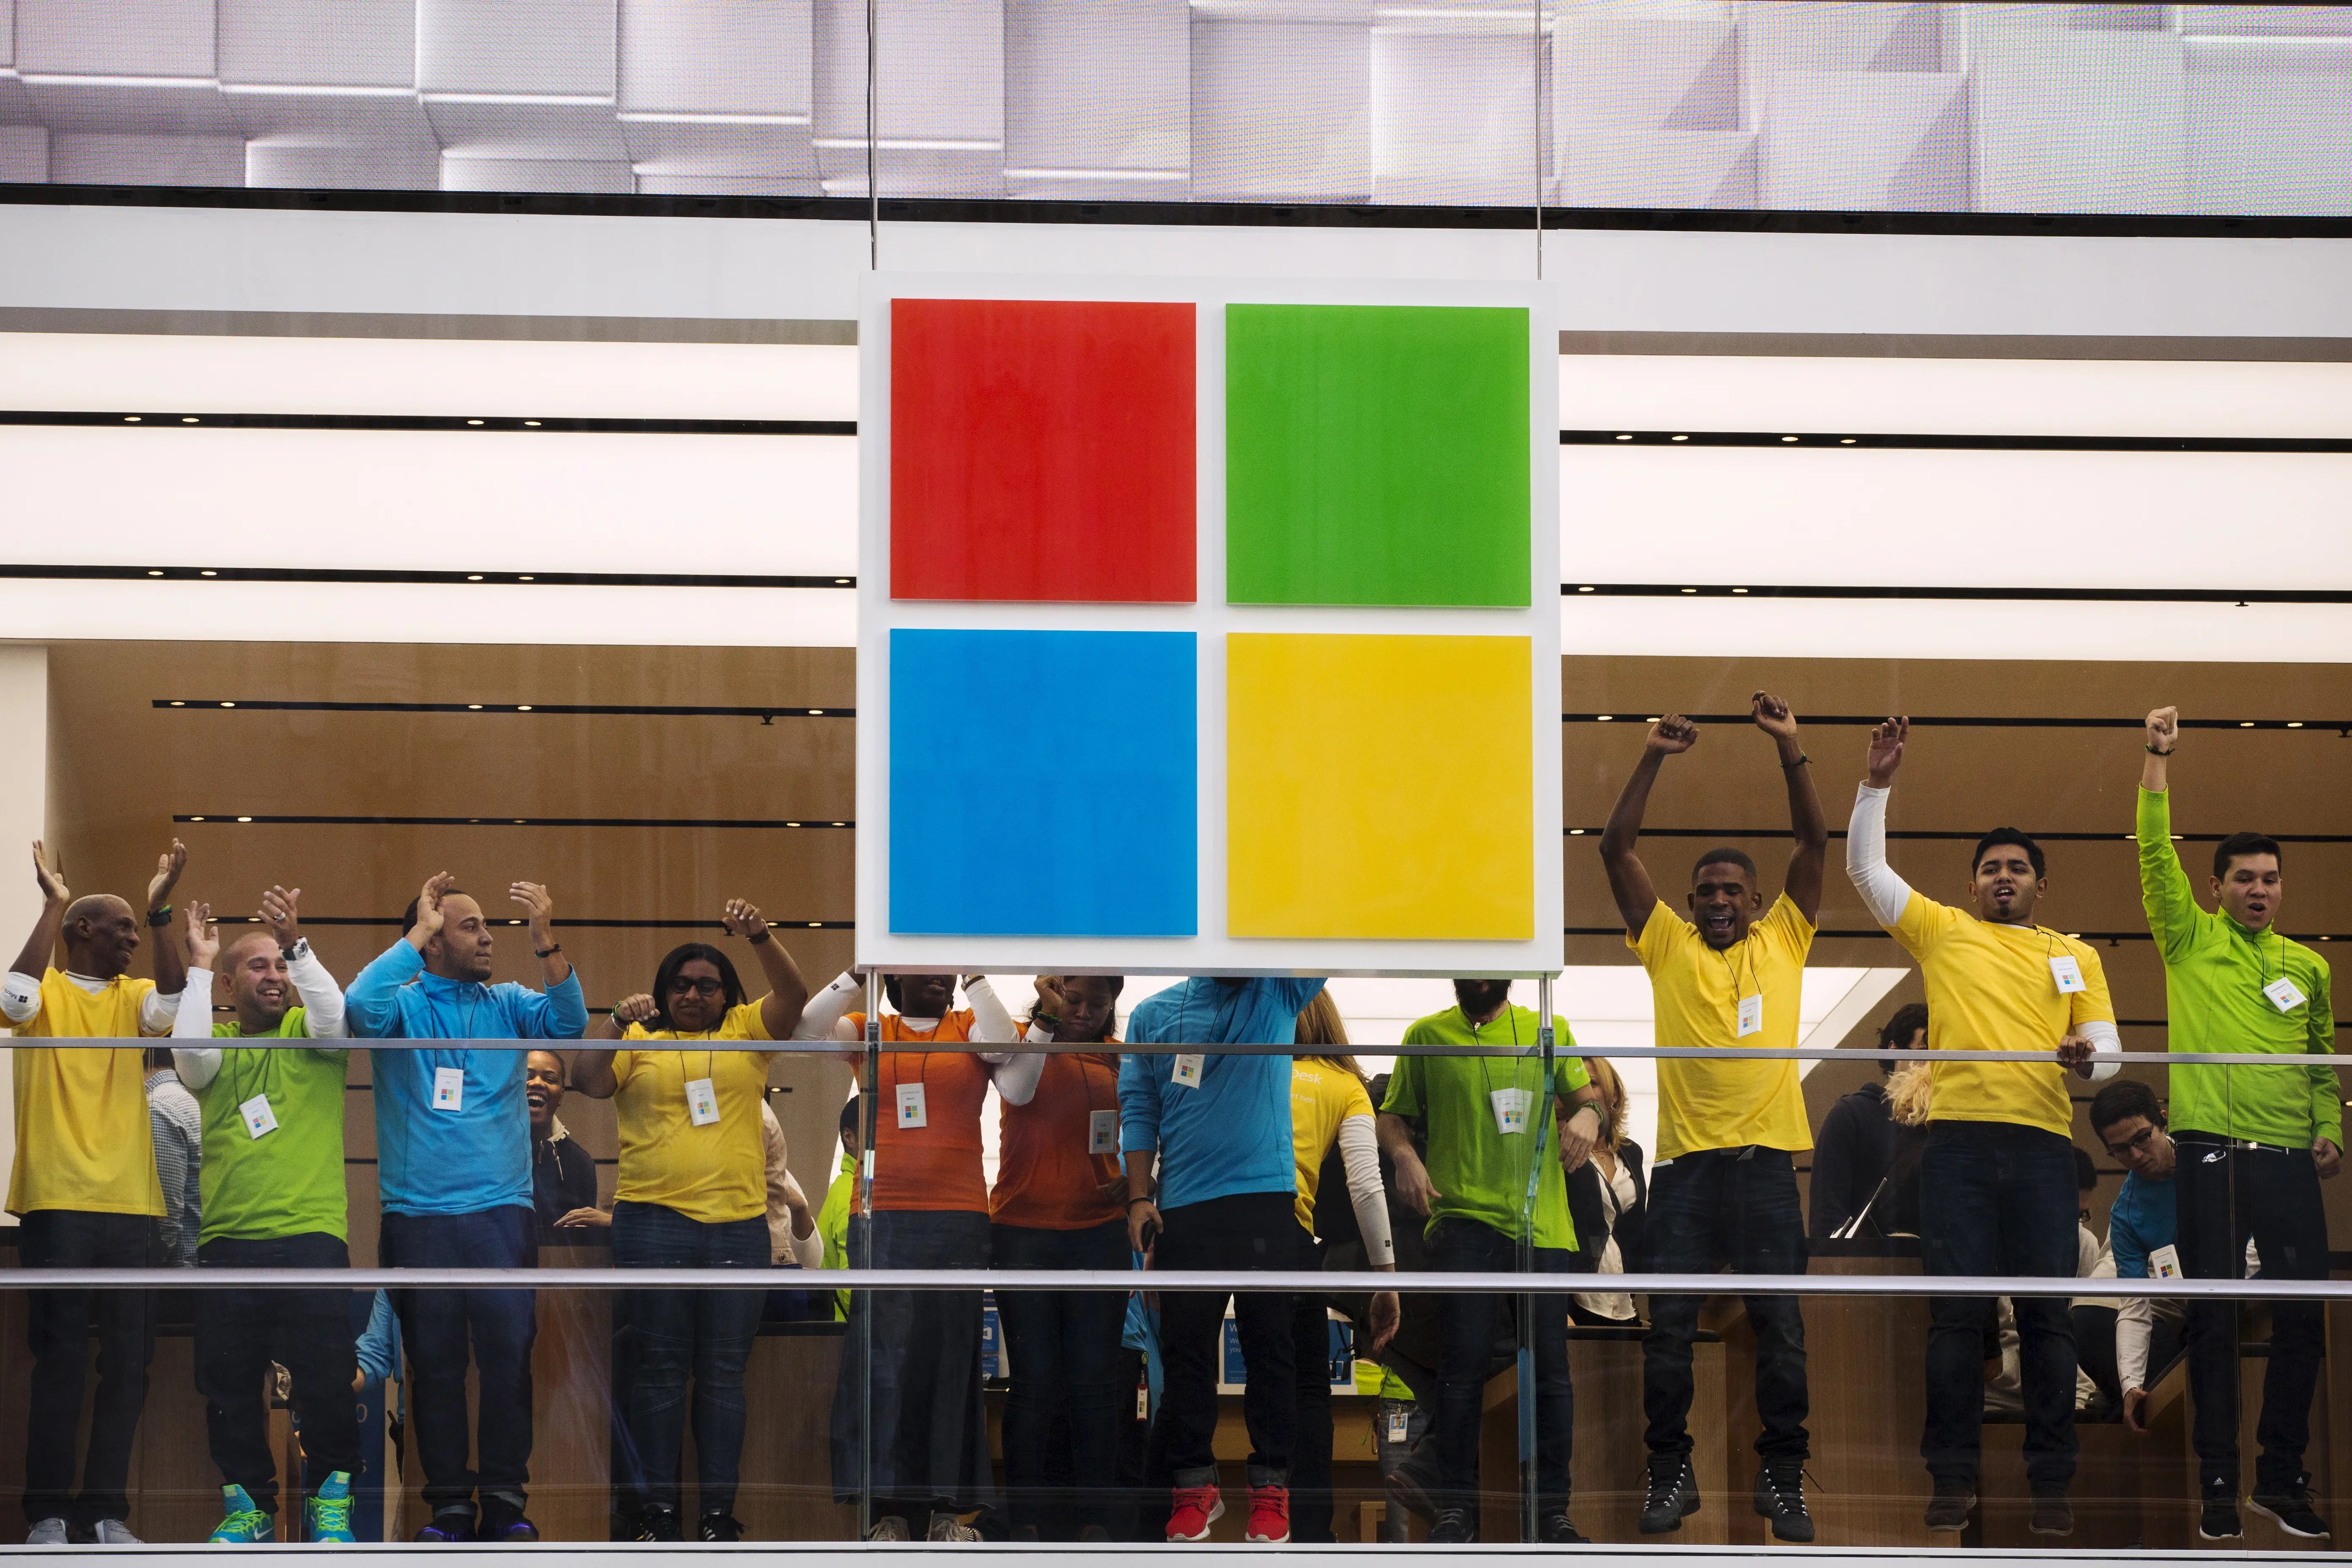 Microsoft's Principal Directors of Program Management help coordinate the teams of engineers working on products and features. They make $185,083, or $303,959 in total compensation.